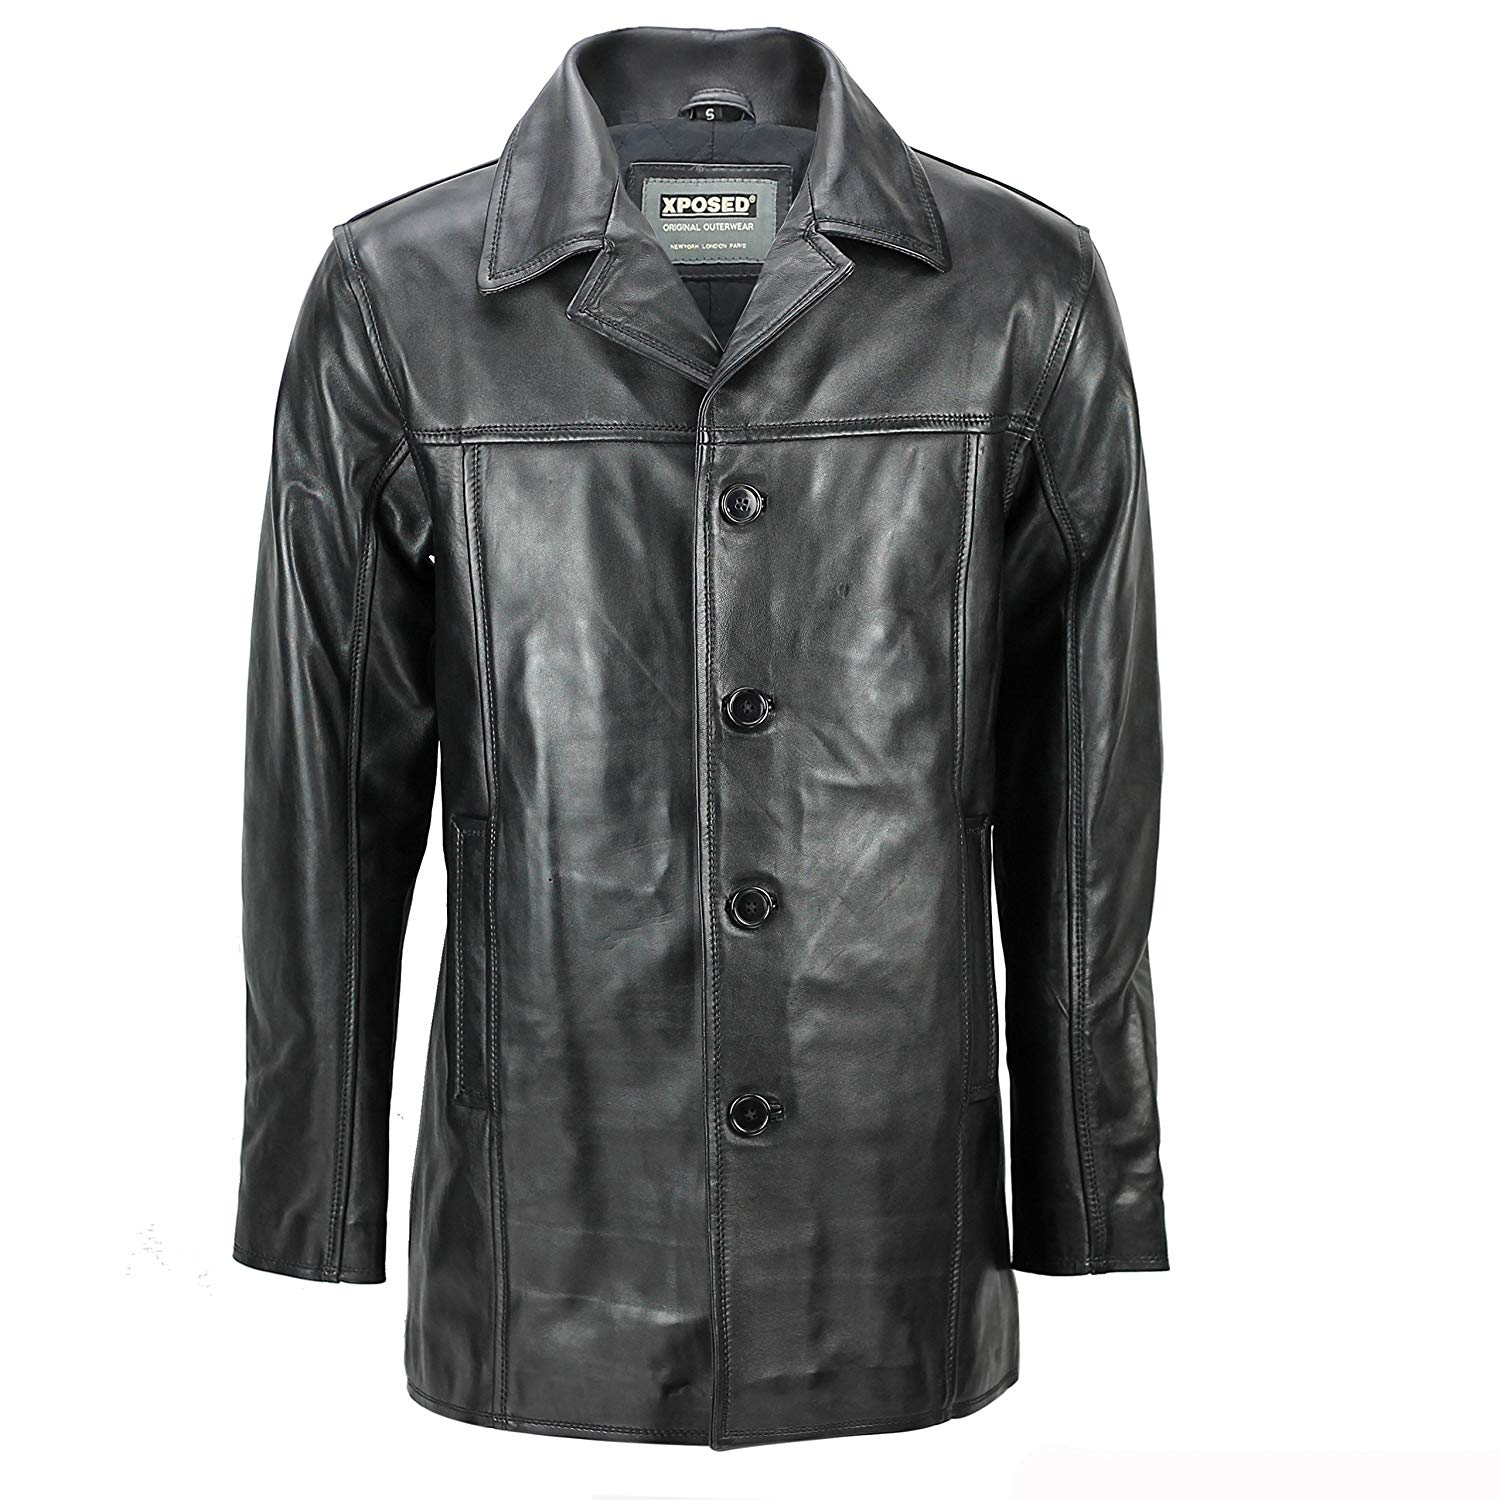 52b7e248c85b5 Get Quotations · XPOSED Mens Real Leather Blazer Style Button Coat Vintage  Smart Casual Black Reefer Jacket